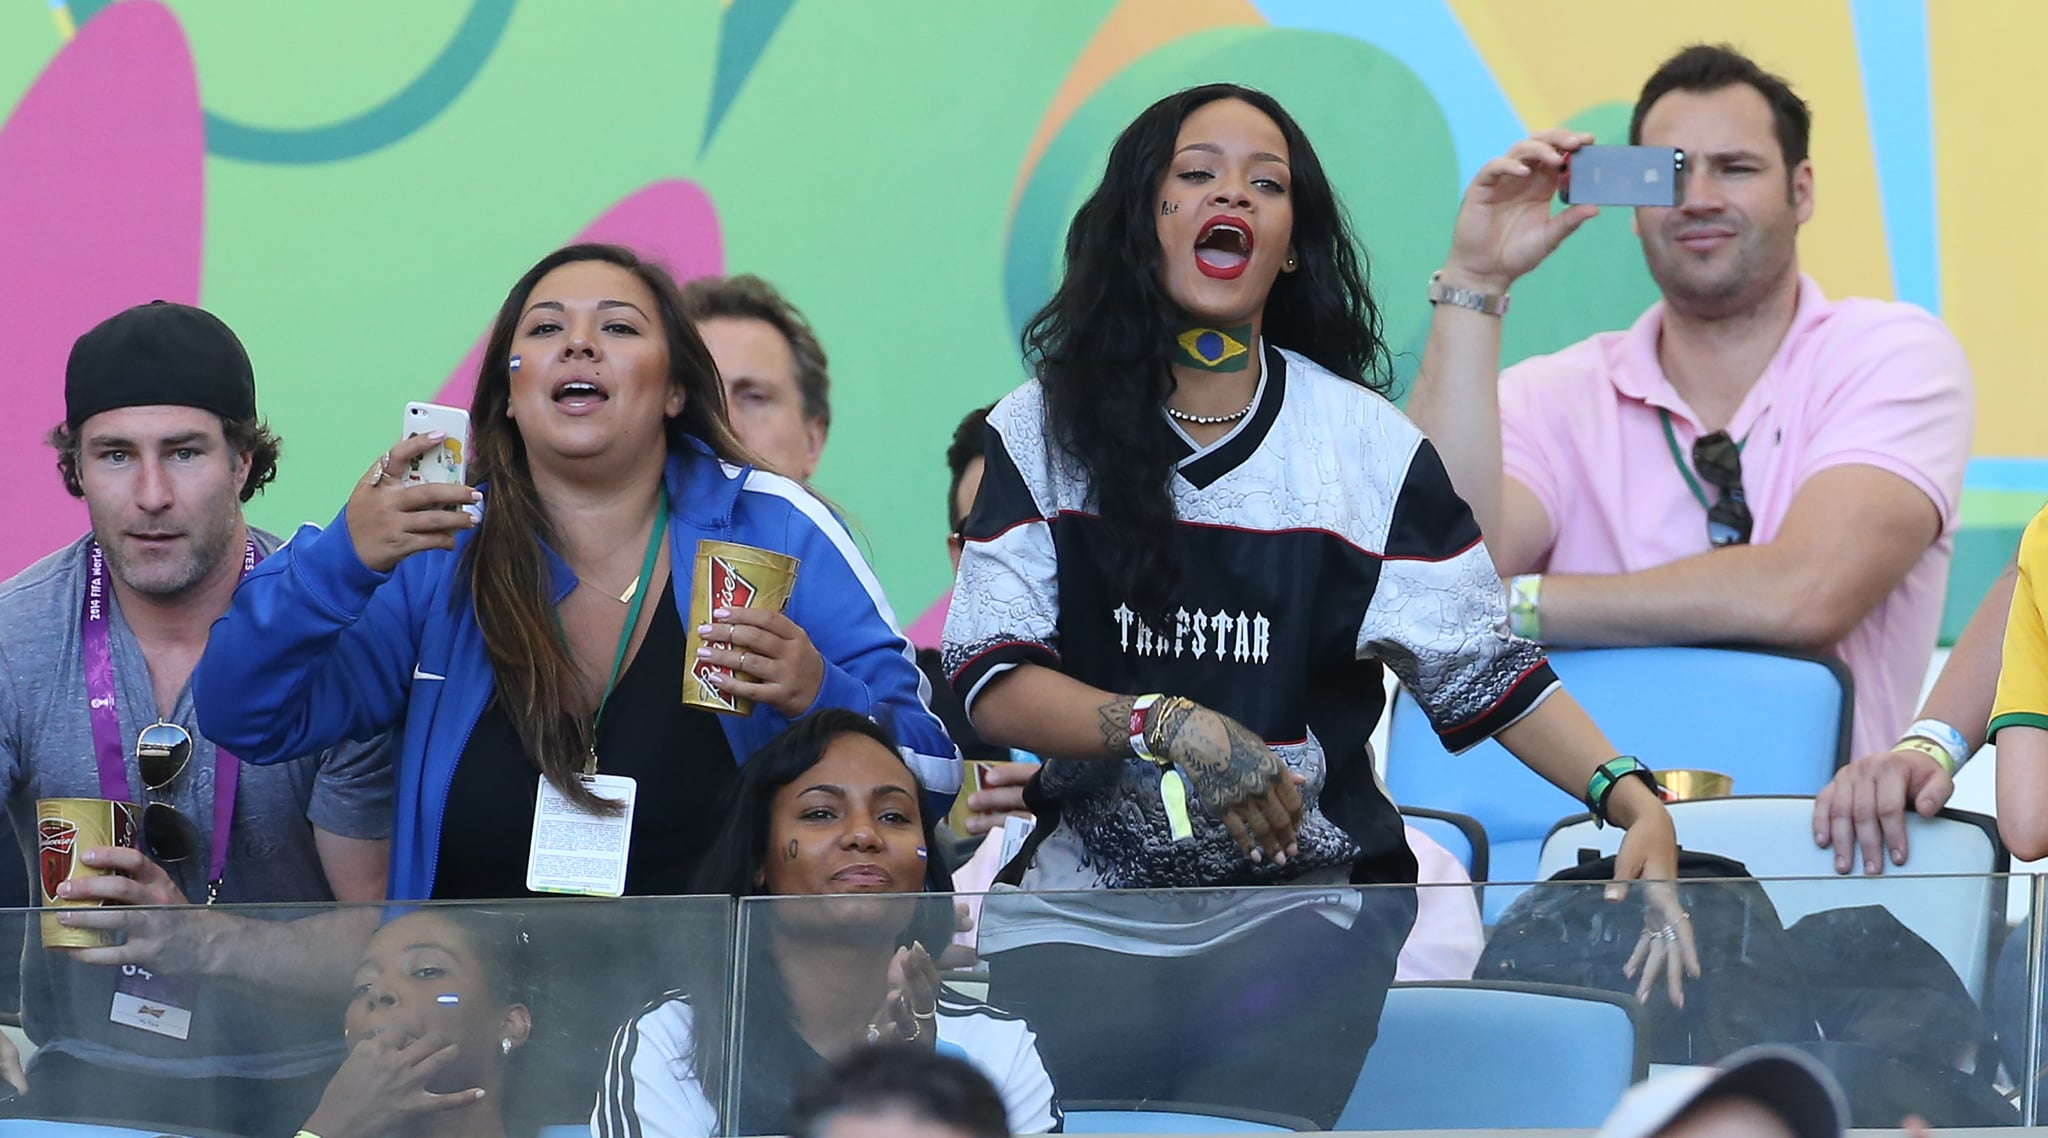 Don't Forget to Show Off Your Dance Moves, RiRi!